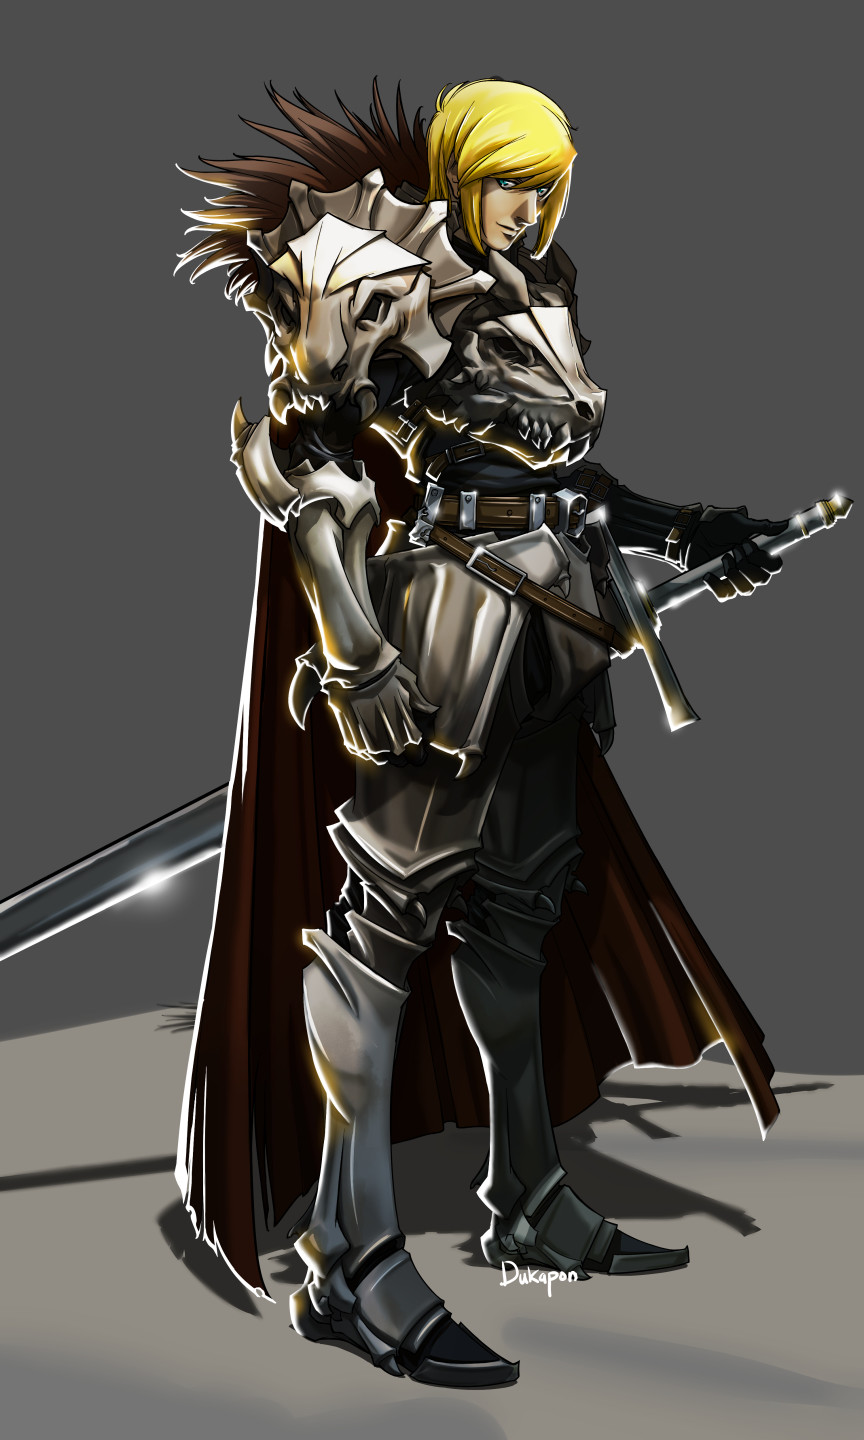 Seokjin Jeon Knight With Dragon Armor Check out our dragon armor selection for the very best in unique or custom, handmade pieces from our clothing shops. seokjin jeon knight with dragon armor